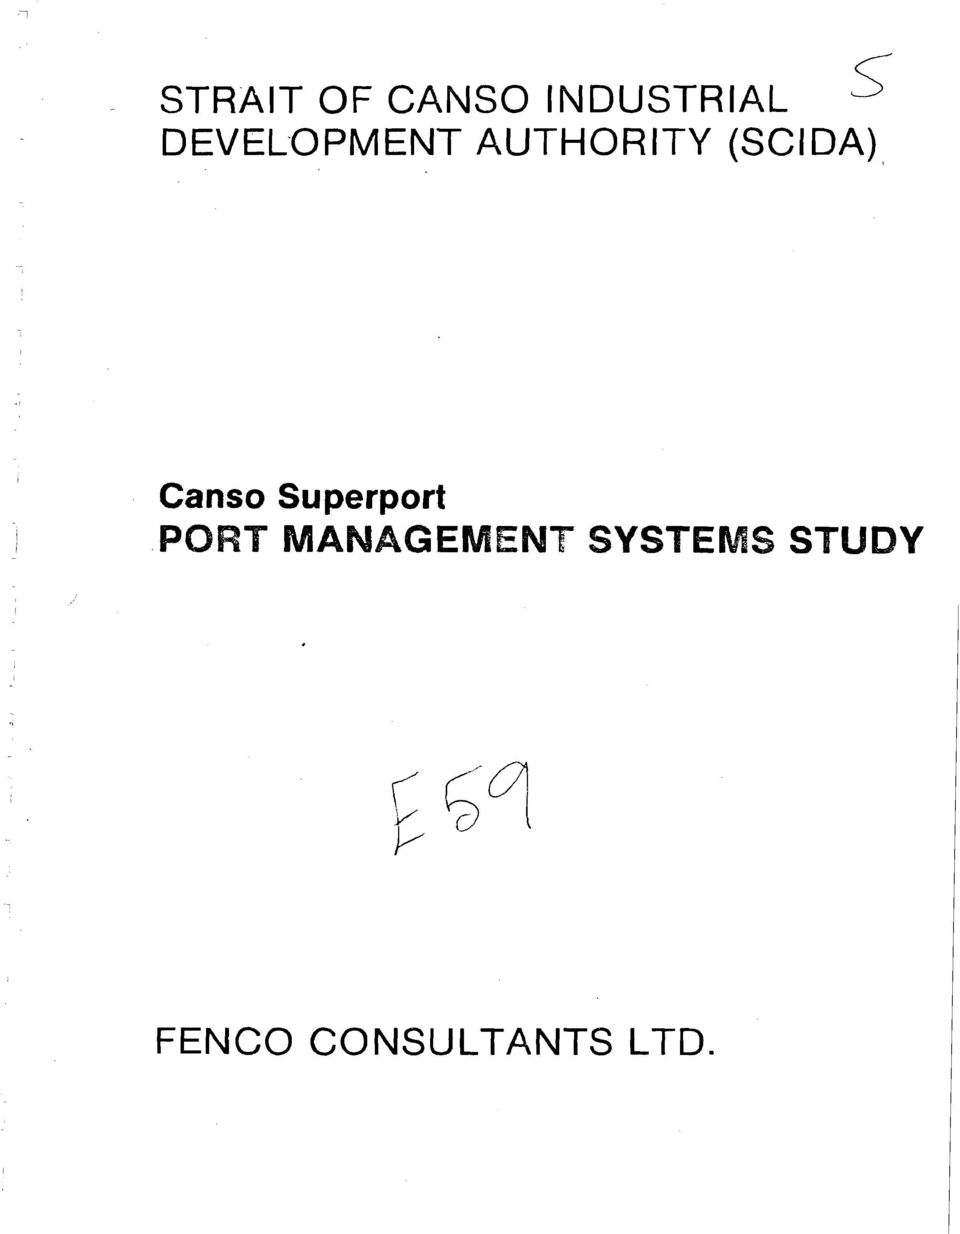 Canso Superport PORT MANAGEMENT